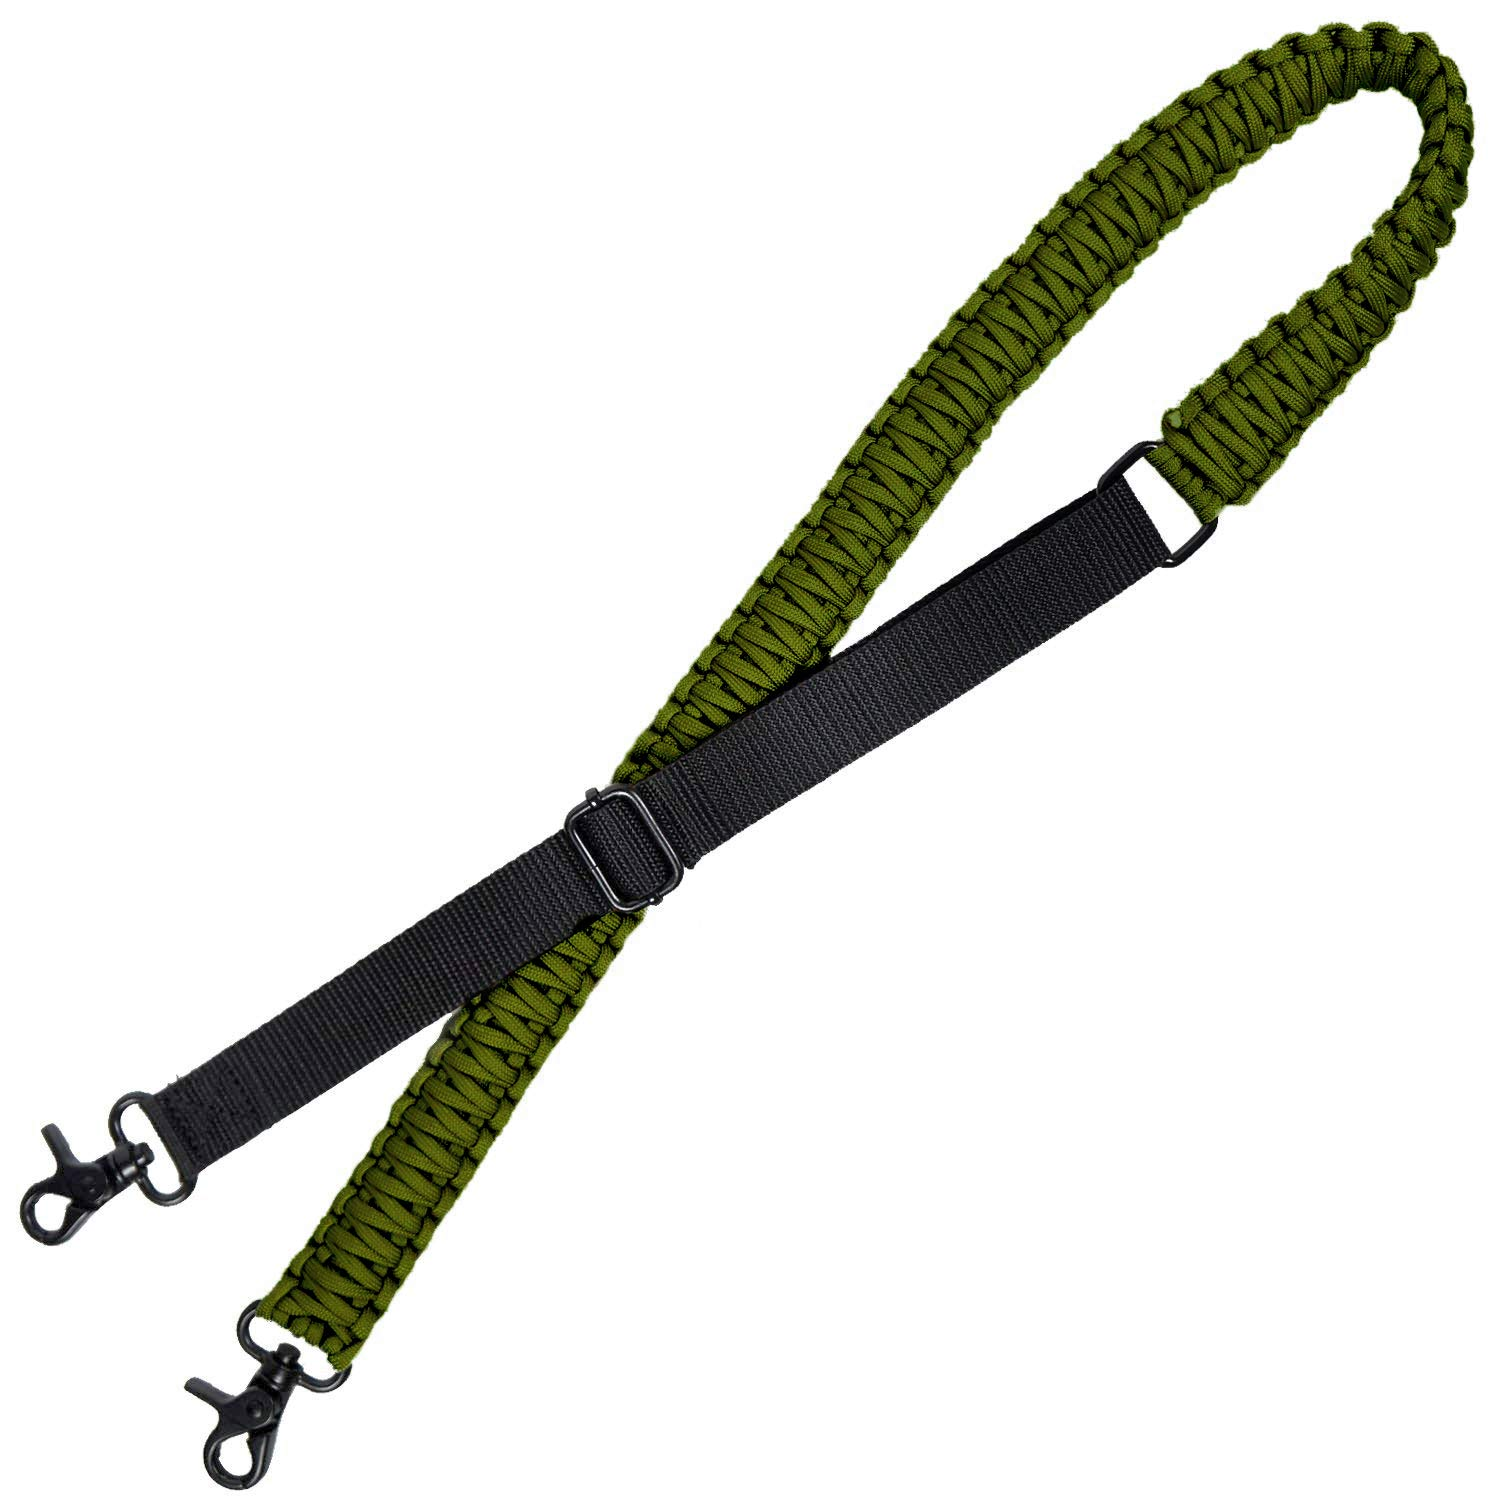 LIVABIT Adjustable 550 Paracord Strap with Dual Two Point 360 Degree Swivel Rotating Latches ODG